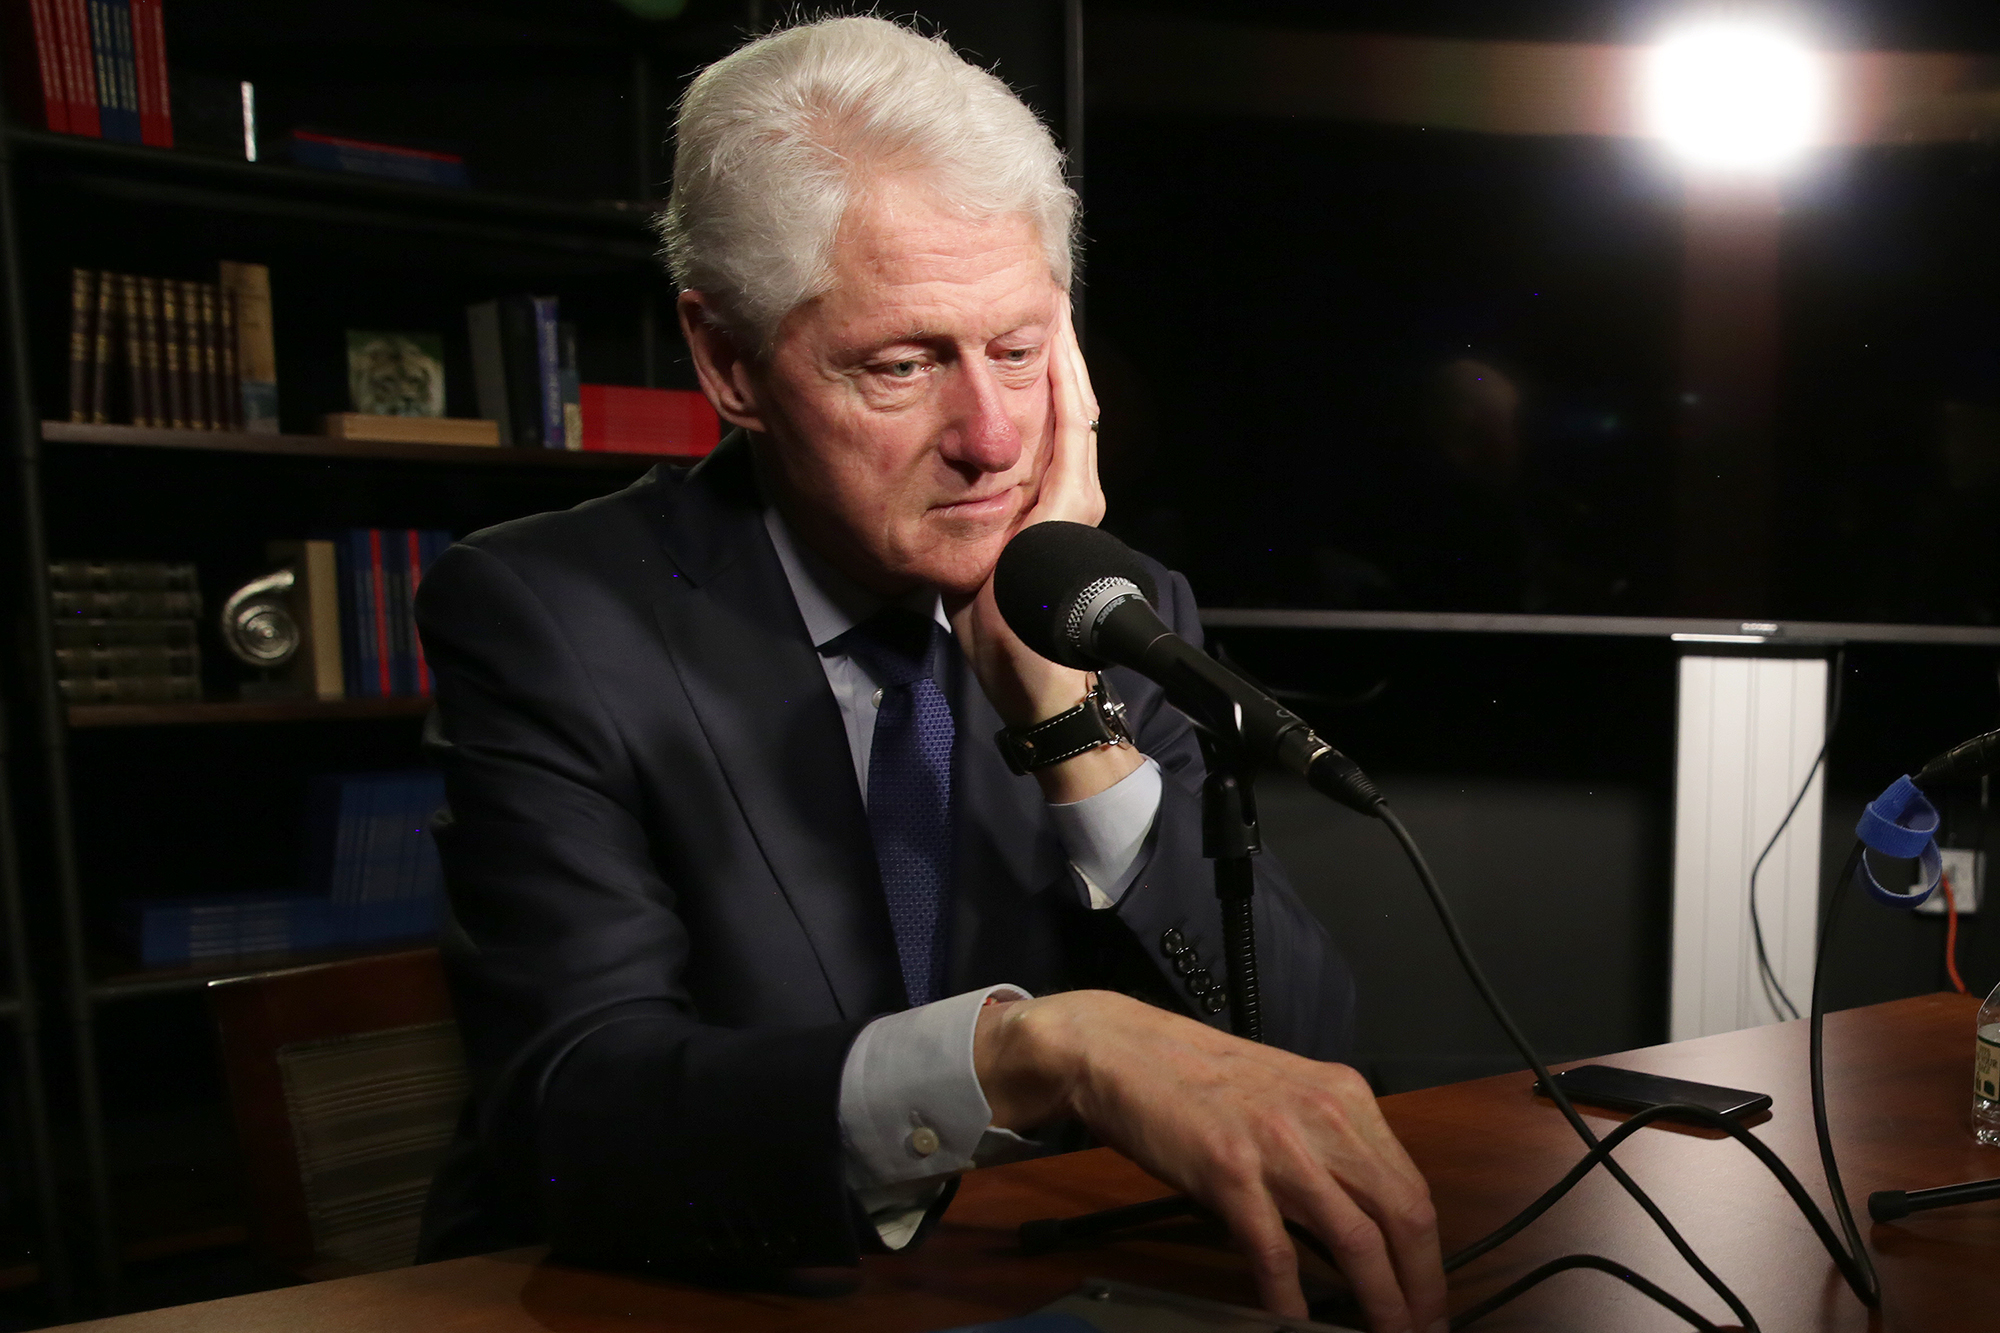 <p>Former President Bill Clinton at his office in New York in April 2019.</p>